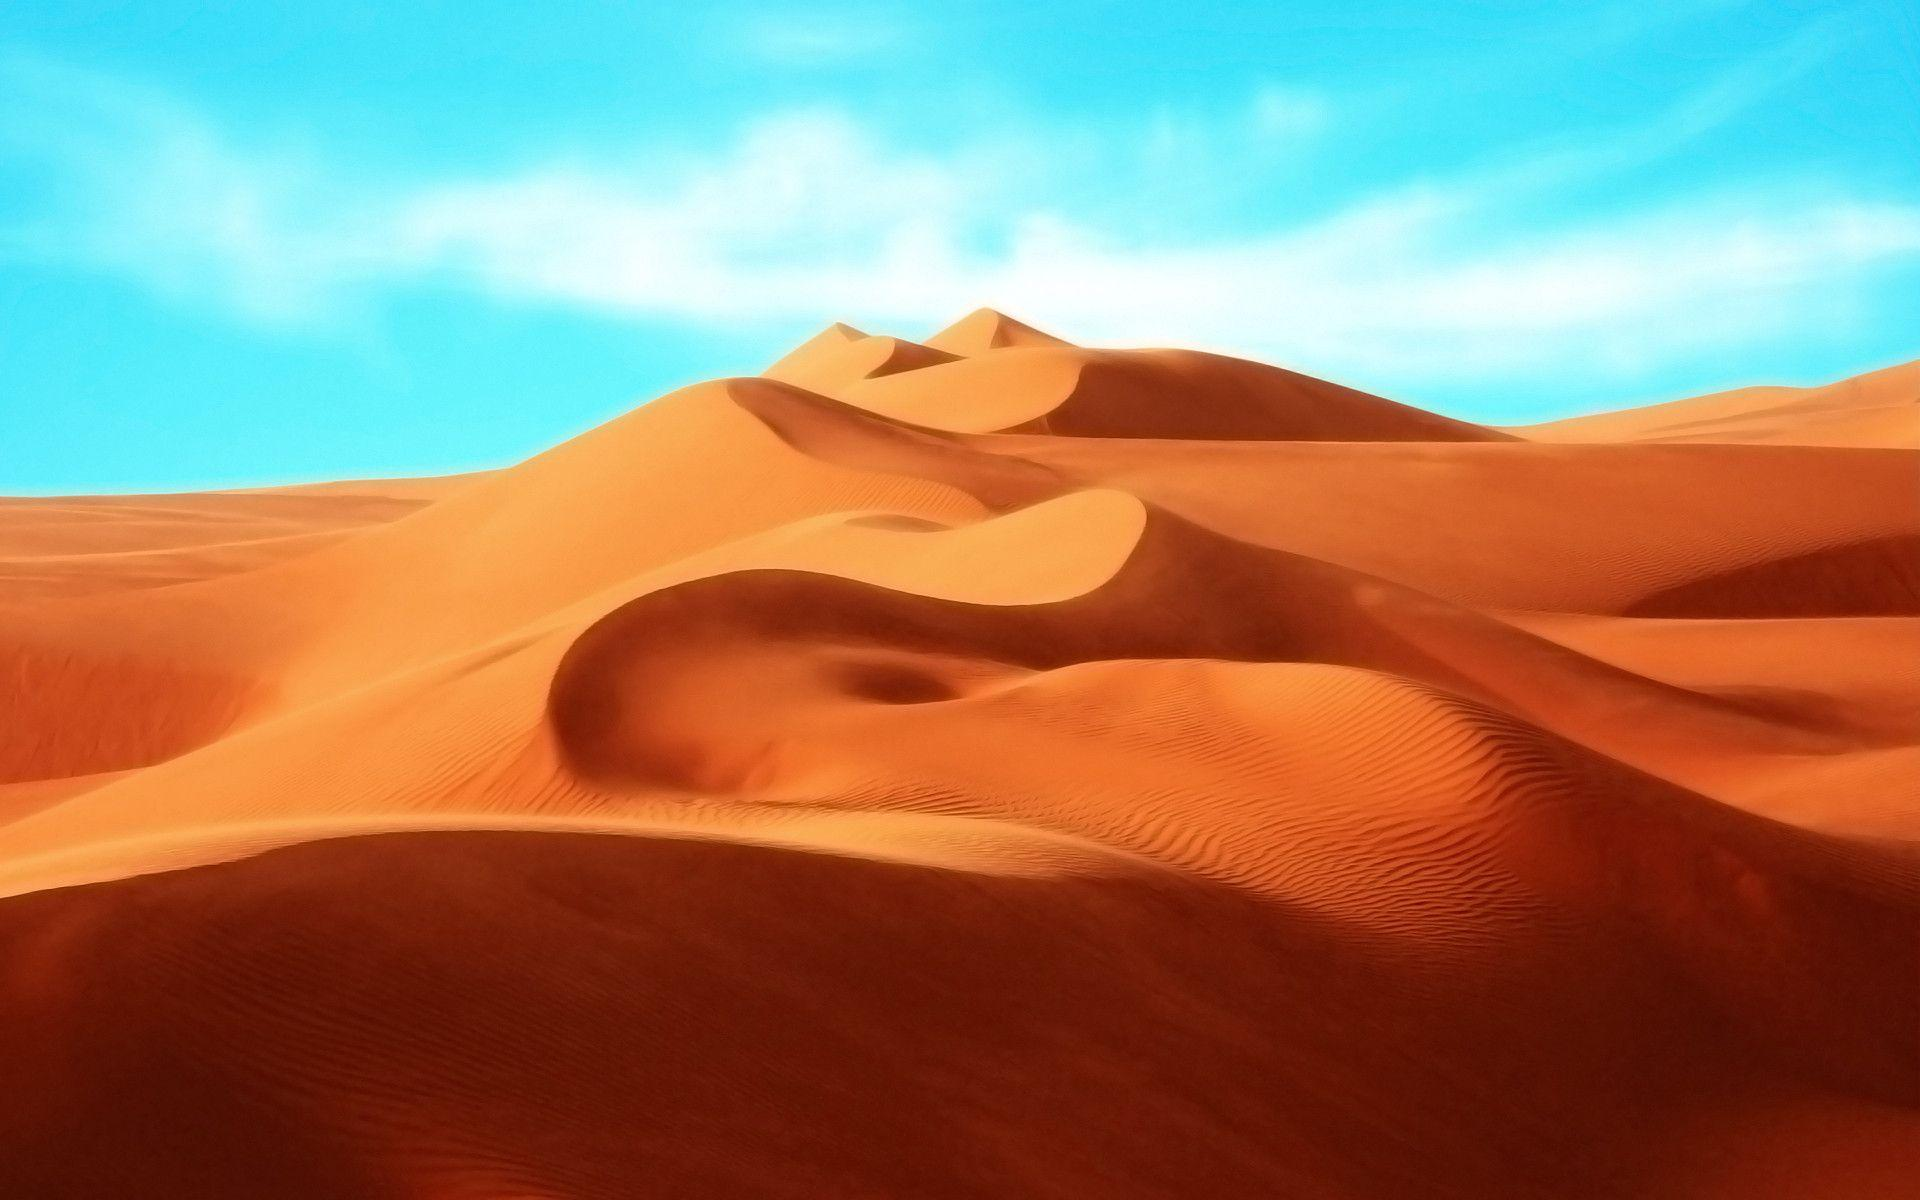 Desert Sand Dune wallpapers and image